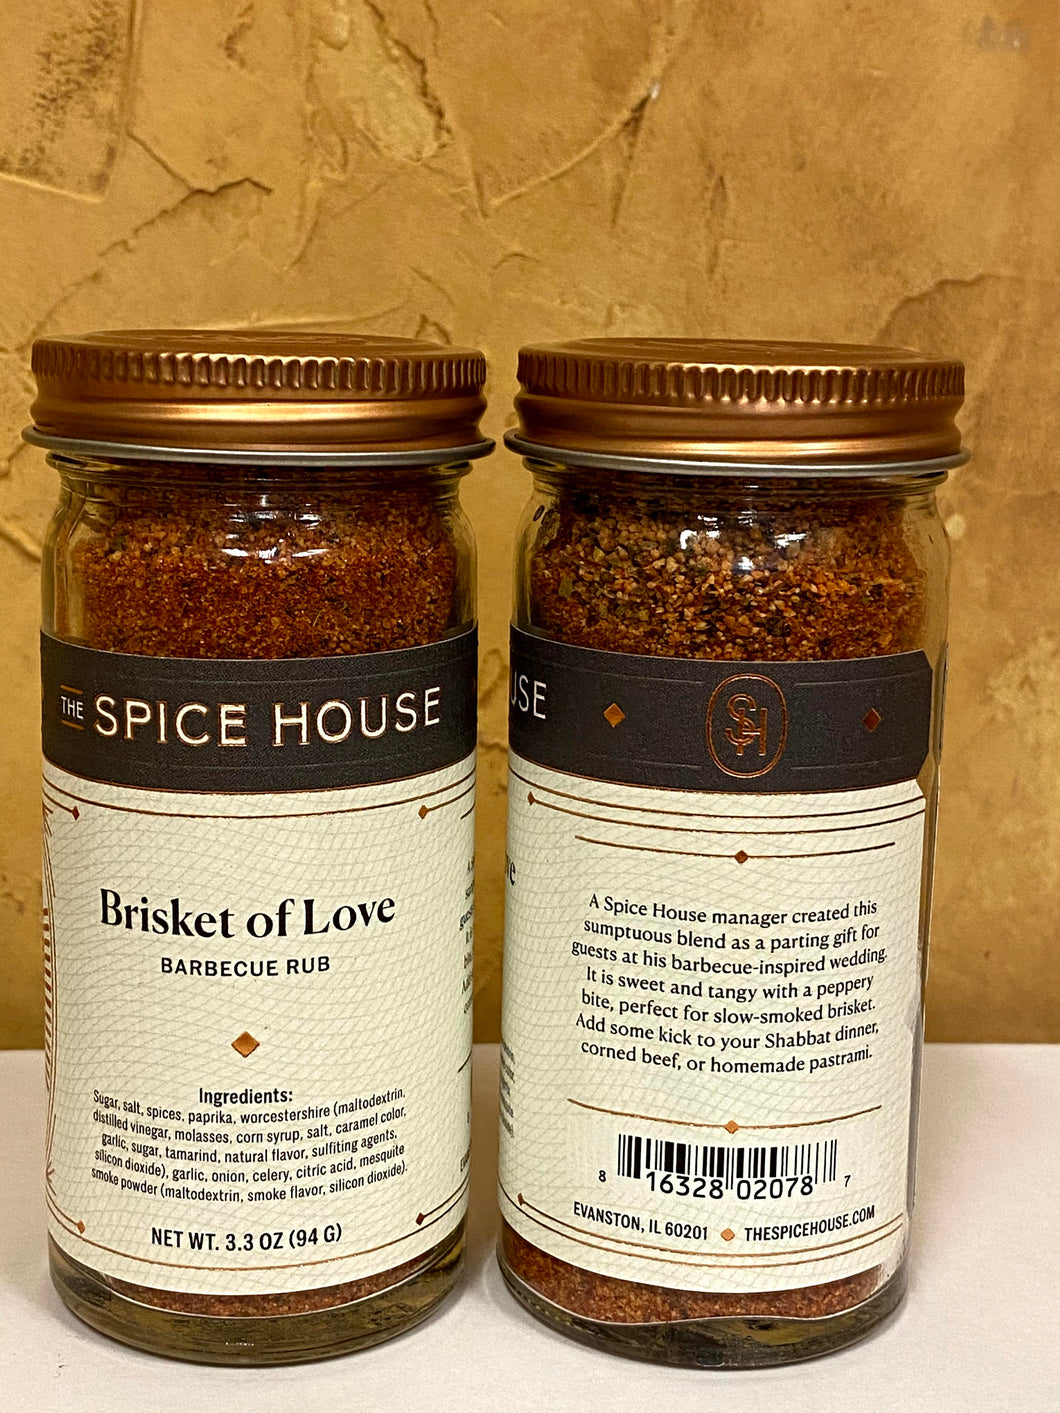 Brisket of Love Barbecue Rub